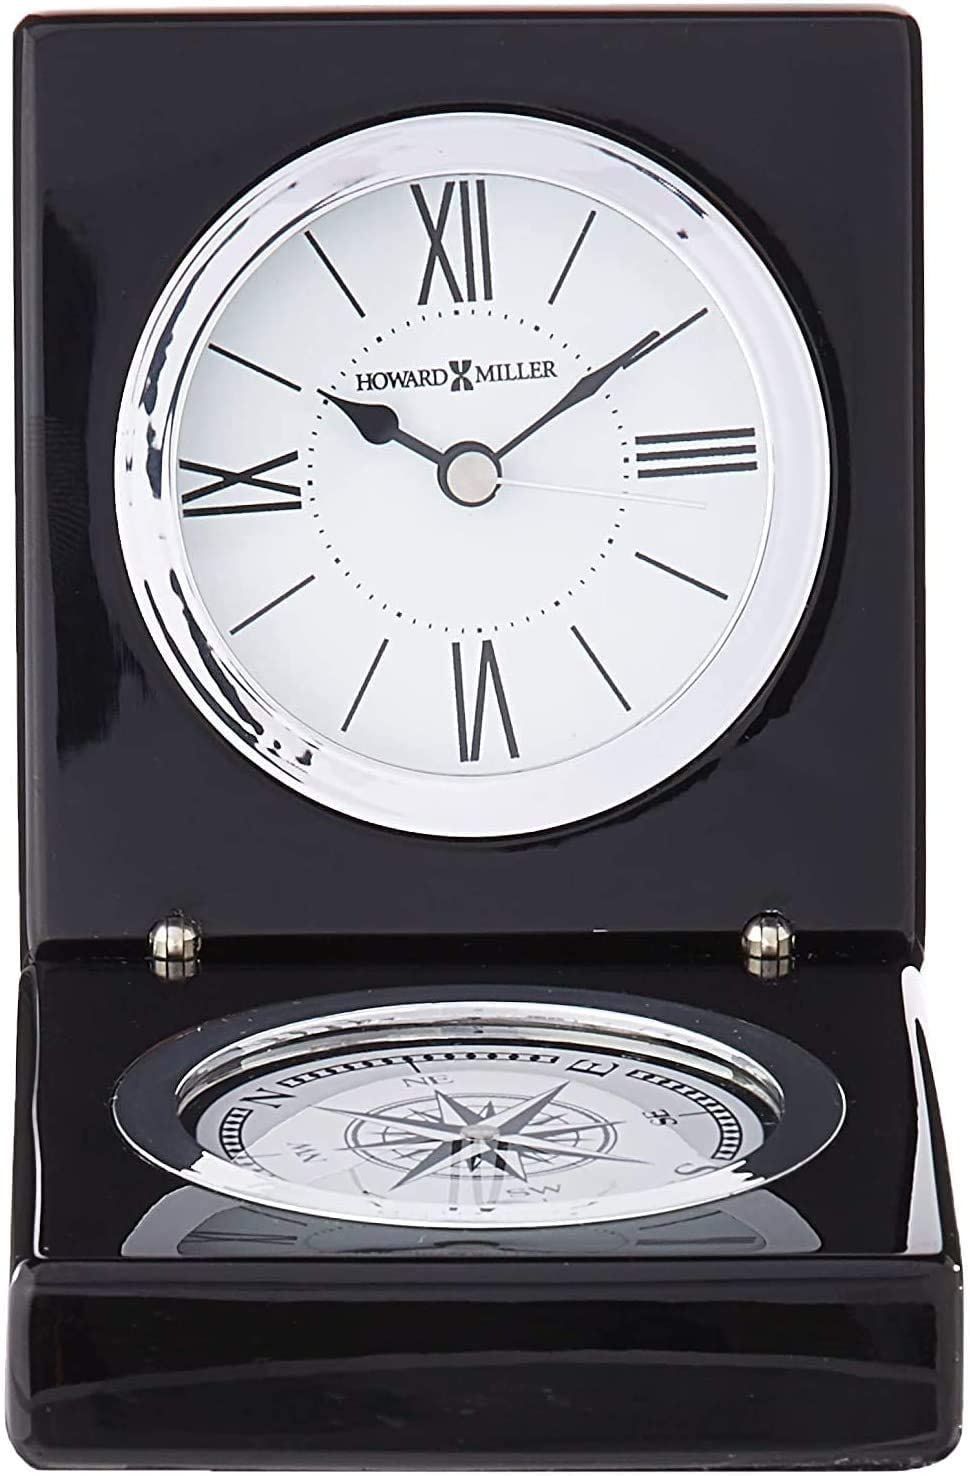 Howard Miller Endeavor Table Clock 645-743 Small Compass Combination with Black Piano Finish and Quartz Movement